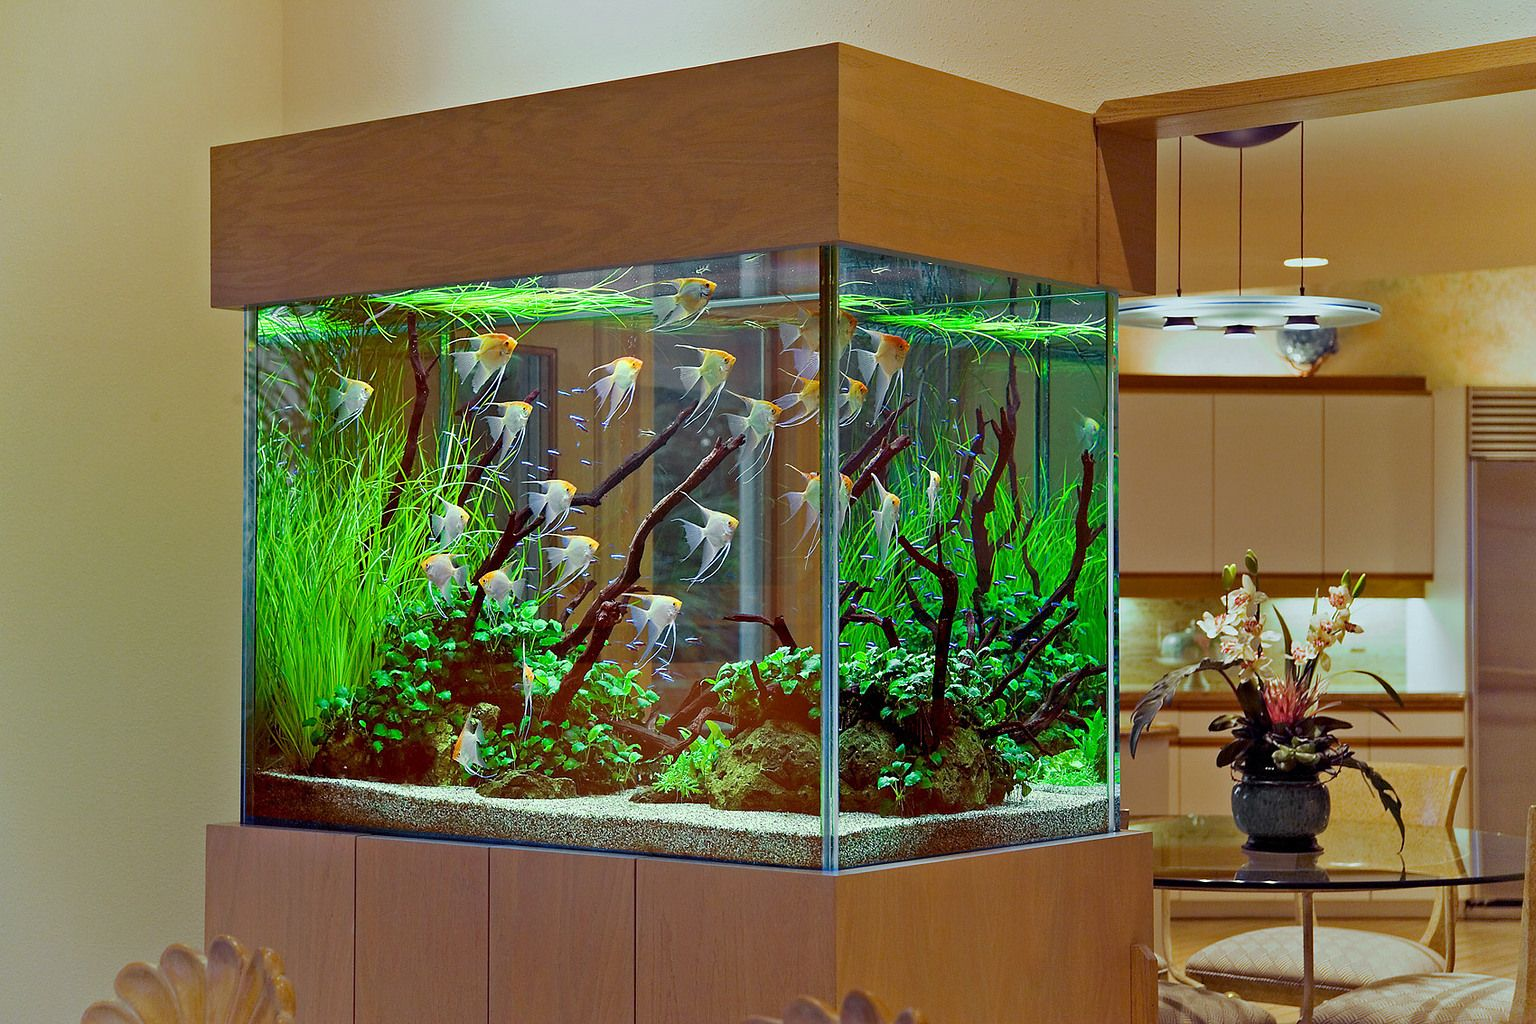 Aquarium Design Group Hardscape Fish Tank Design Aquarium Decorations Glass Fish Tanks